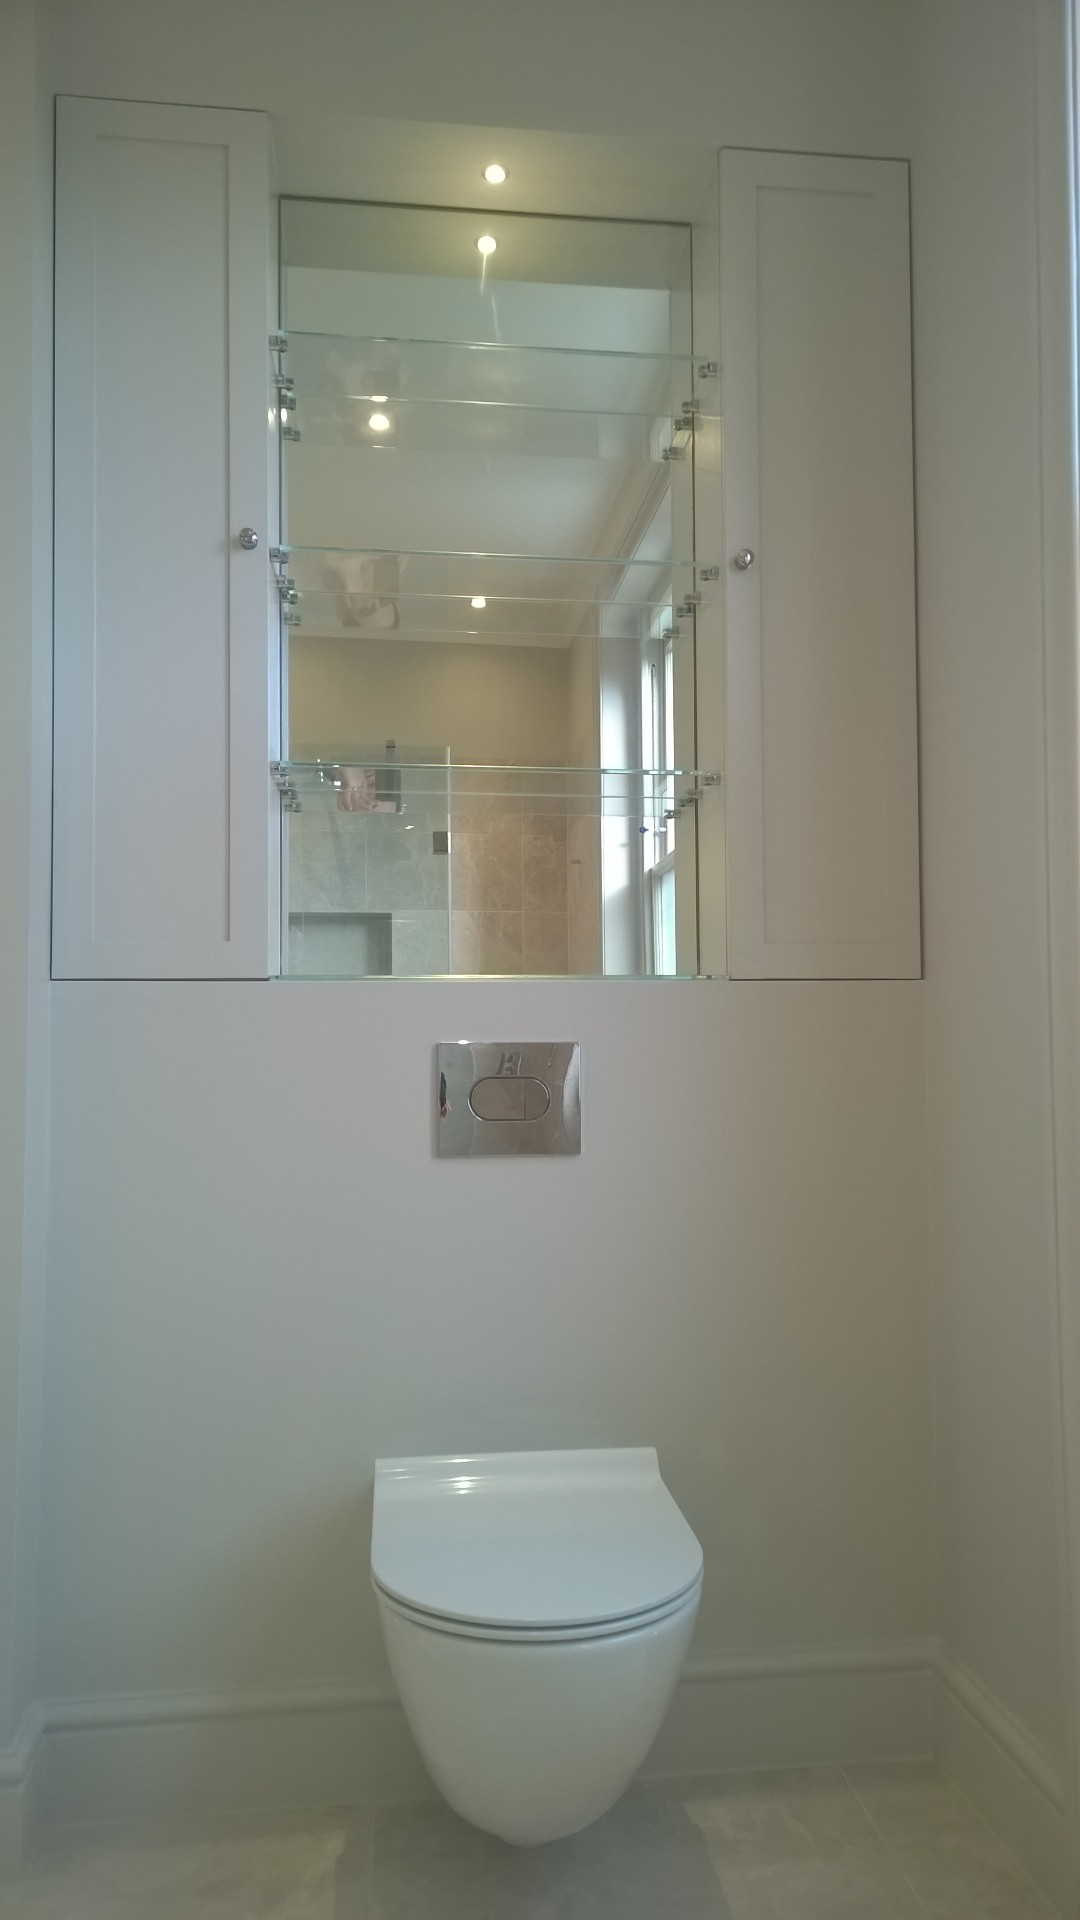 A wall hung WC with bespoke mirror cabinets and shelves above